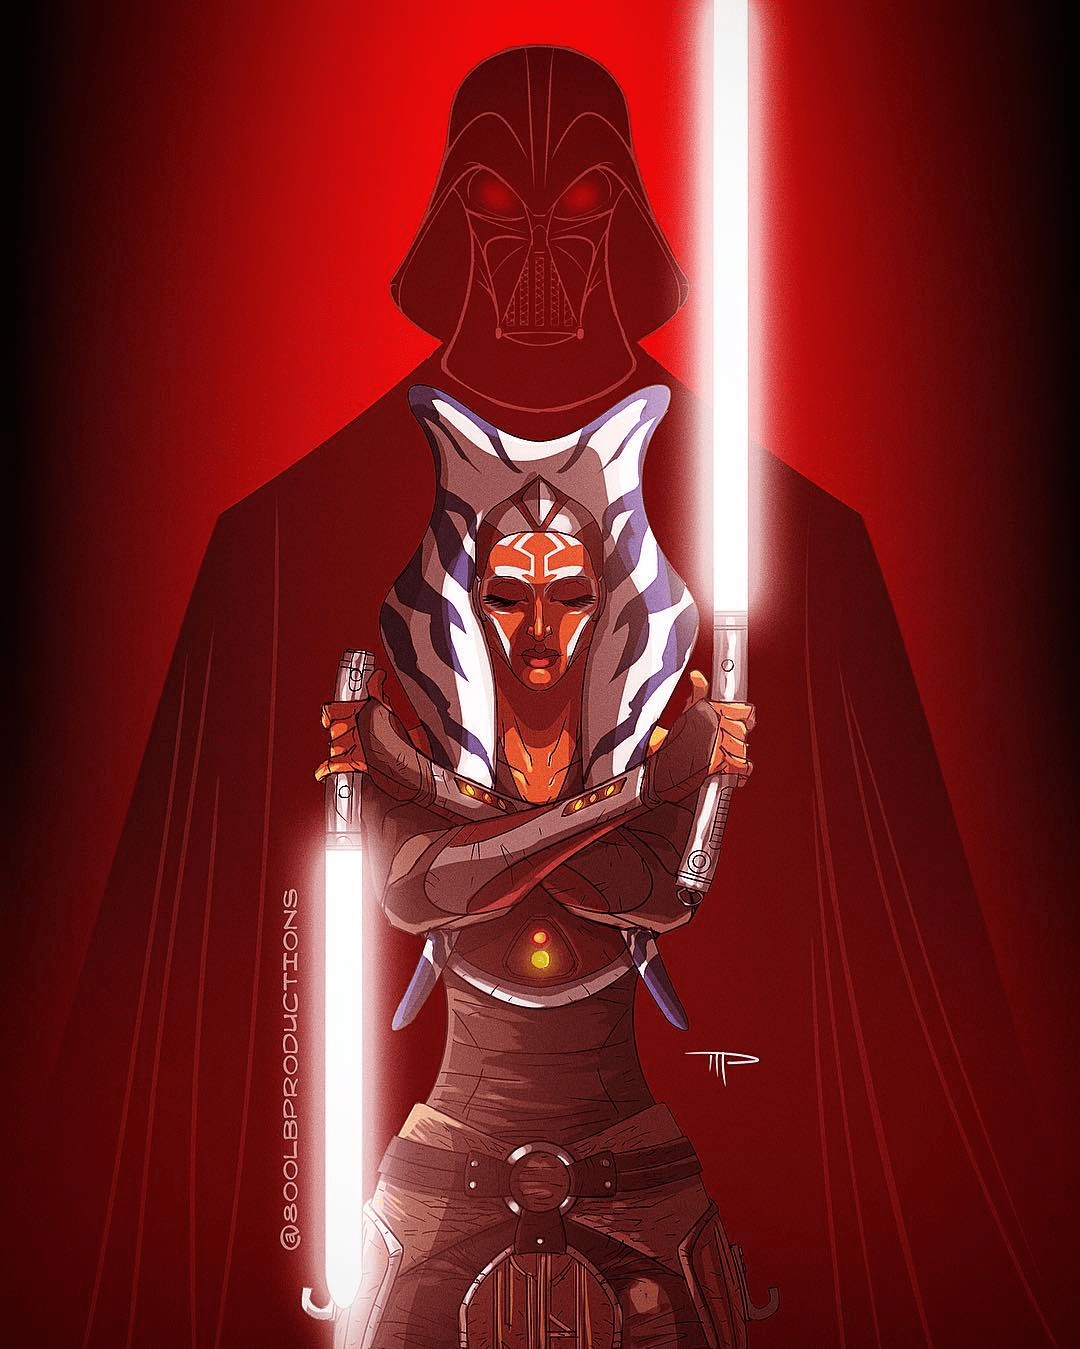 Darth Vader & Ahsoka by Michael Pasquale